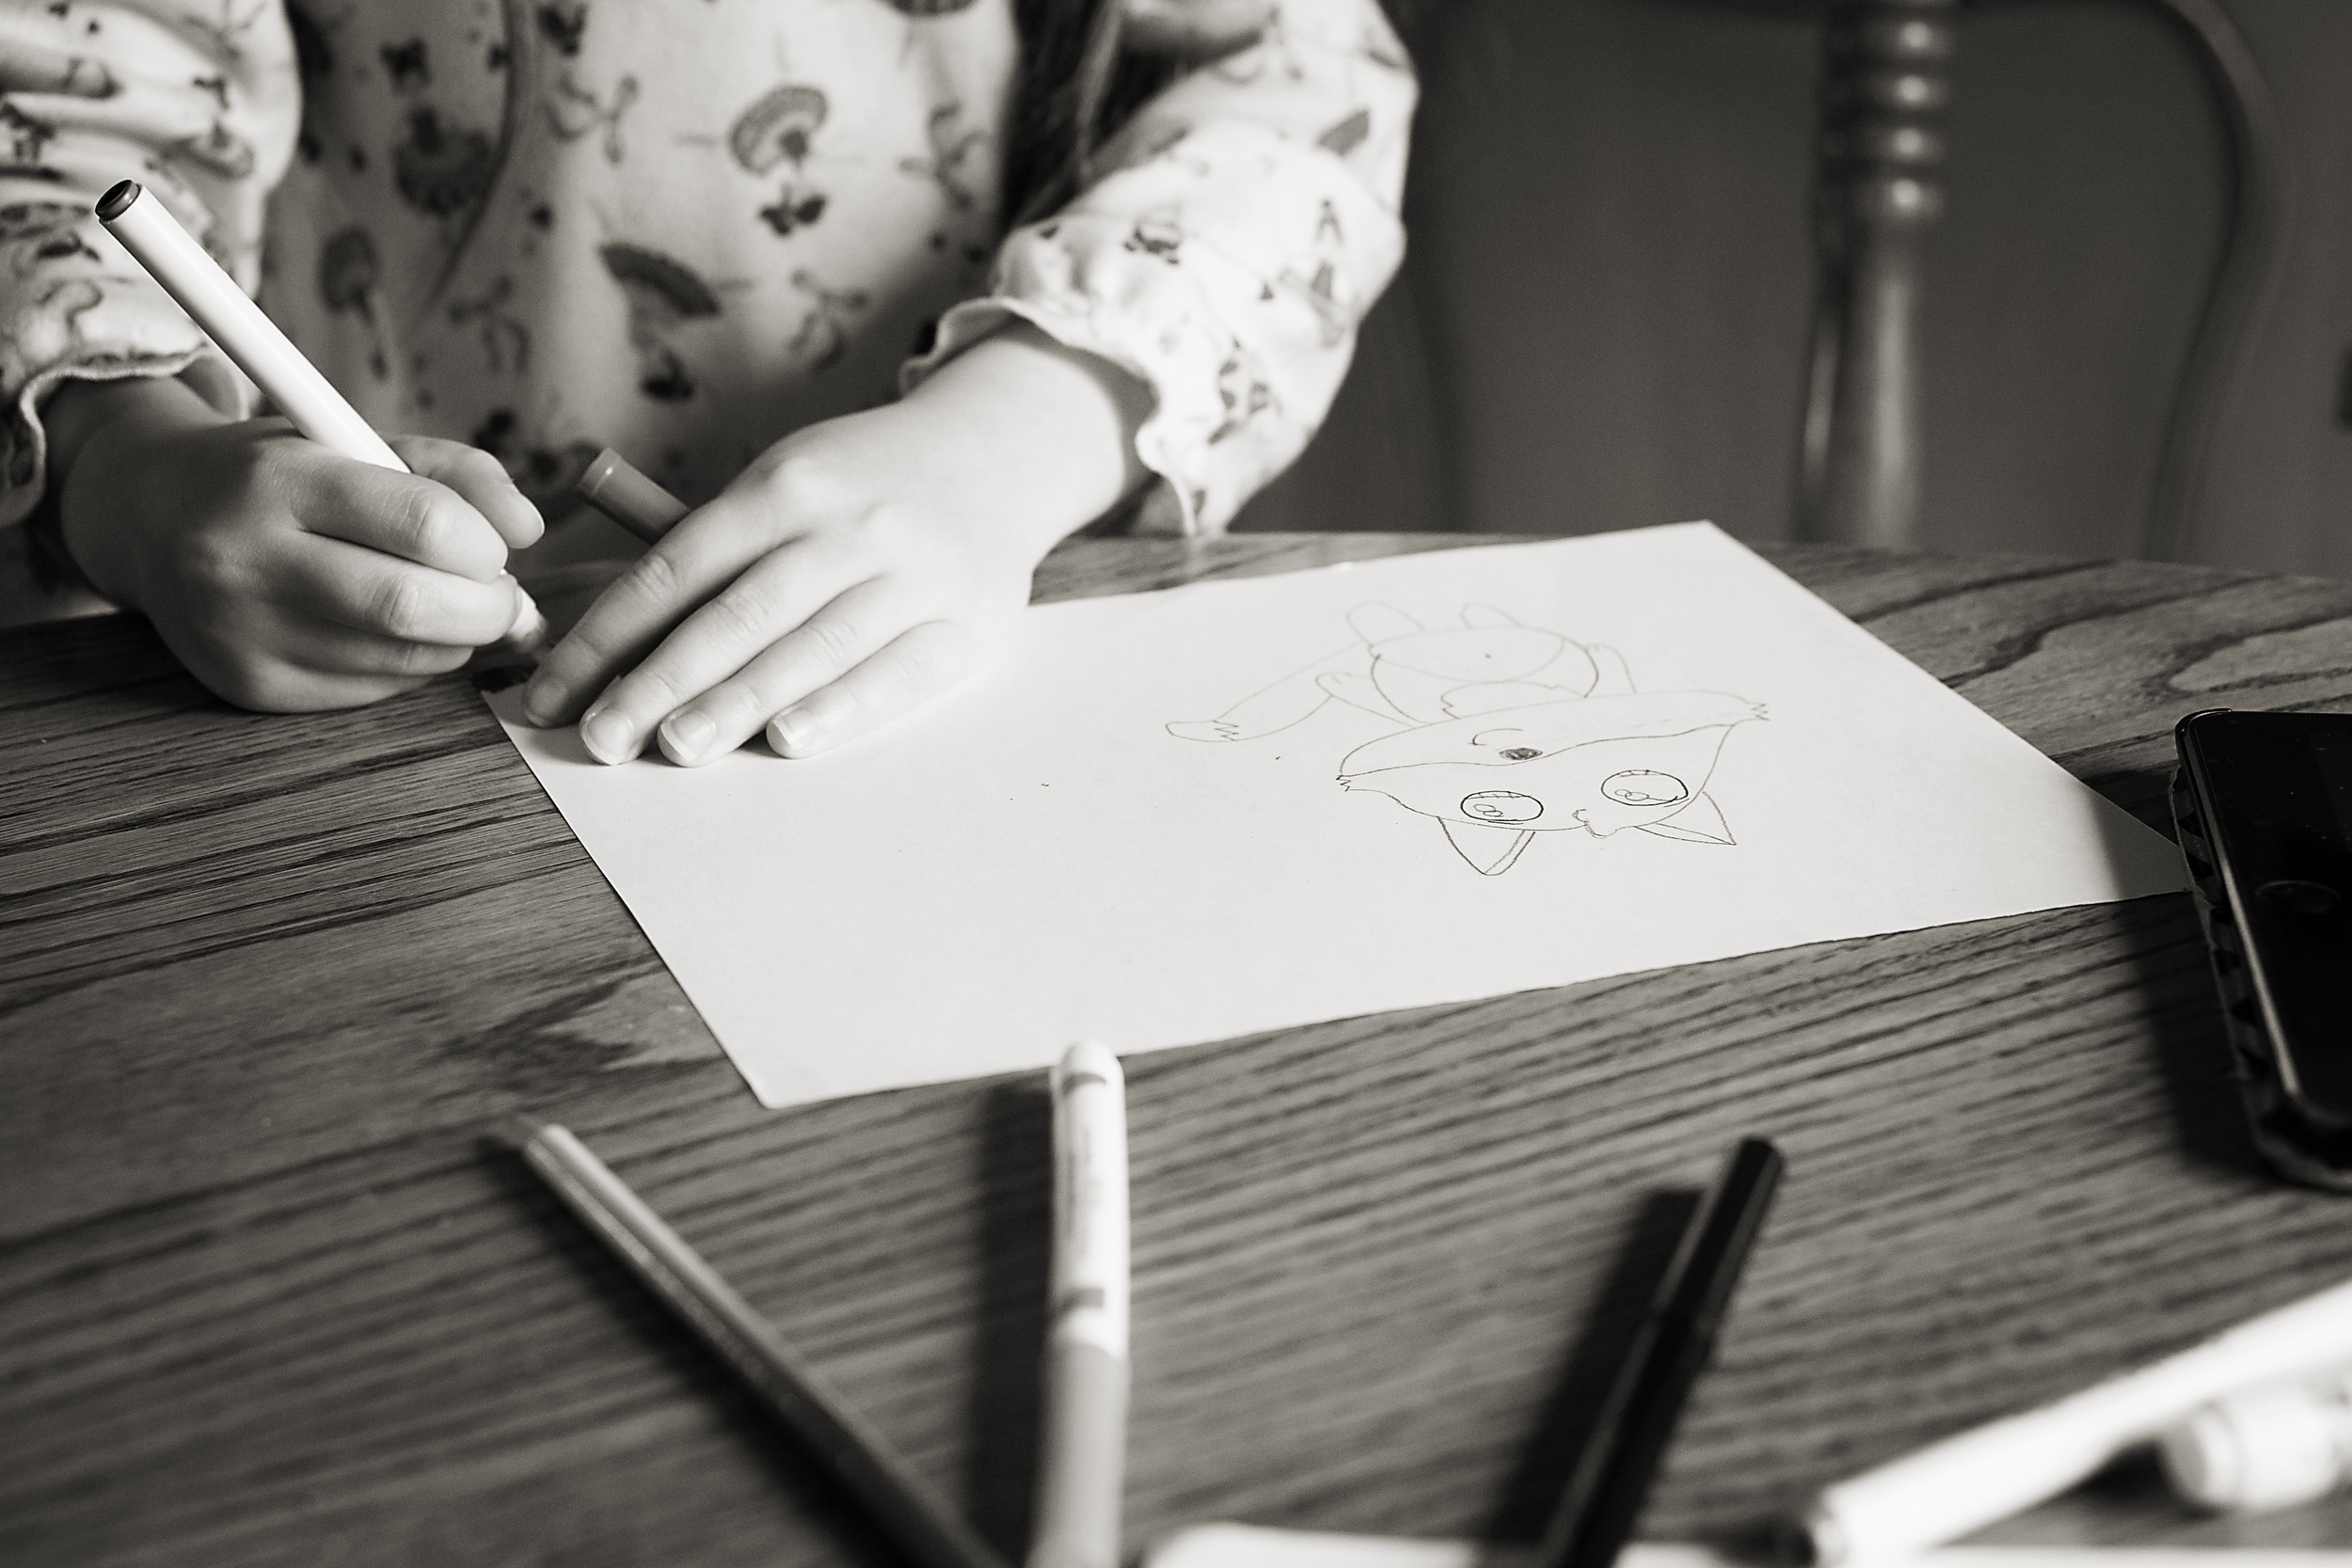 Columbus, Ohio photographer captures daughter drawing cartoon fox with markers and adding details in vintage Worthington home.